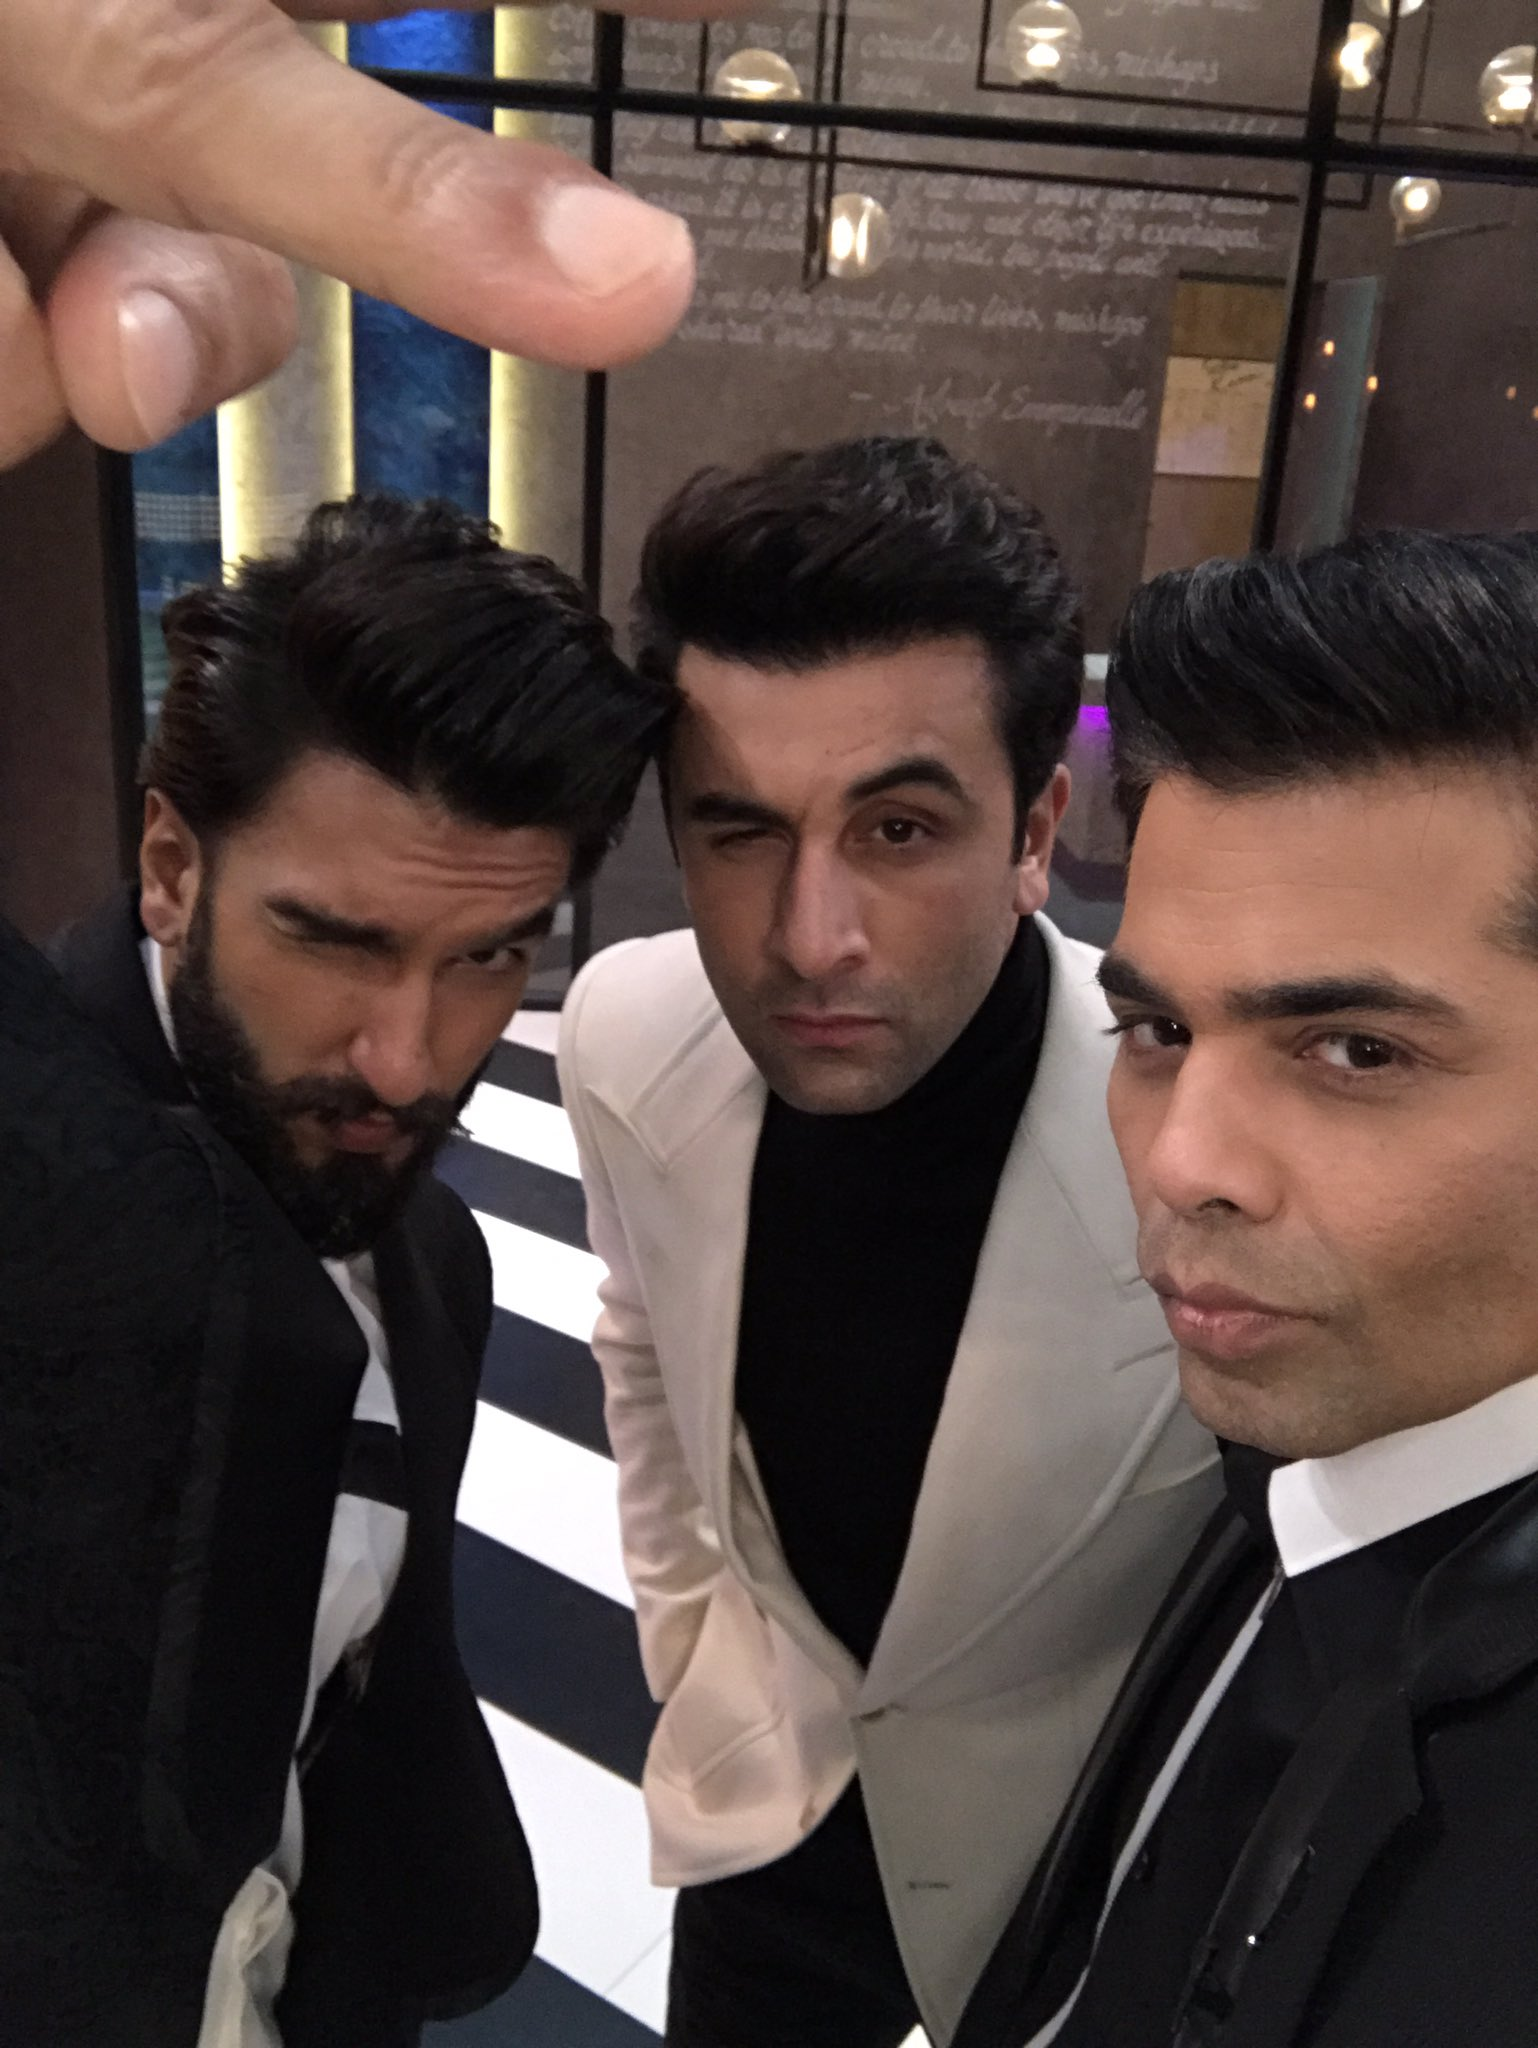 This is what happened today!!! #koffeewithkaran https://t.co/zZZHuaVHiB